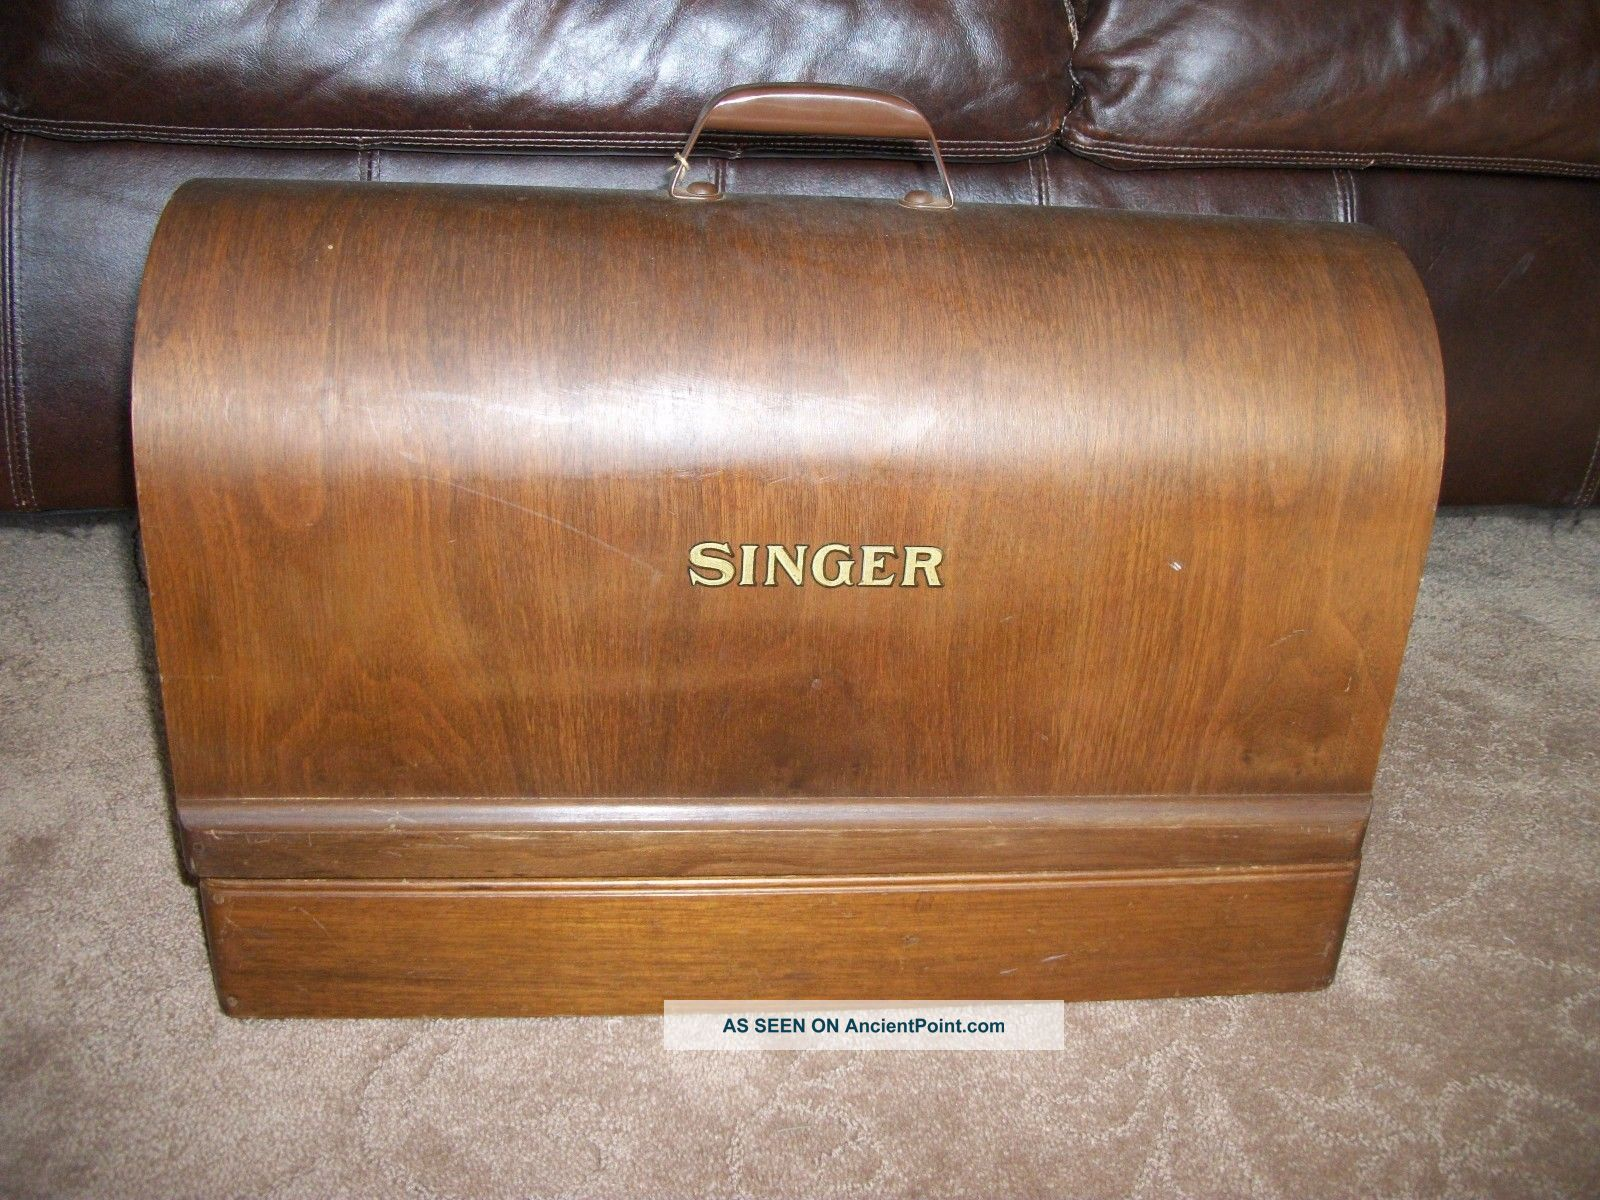 Vintage 20 ' S Singer Sewing Machine Coffin Wood Dome Handle Full Size Case No Key Other Antique Home & Hearth photo